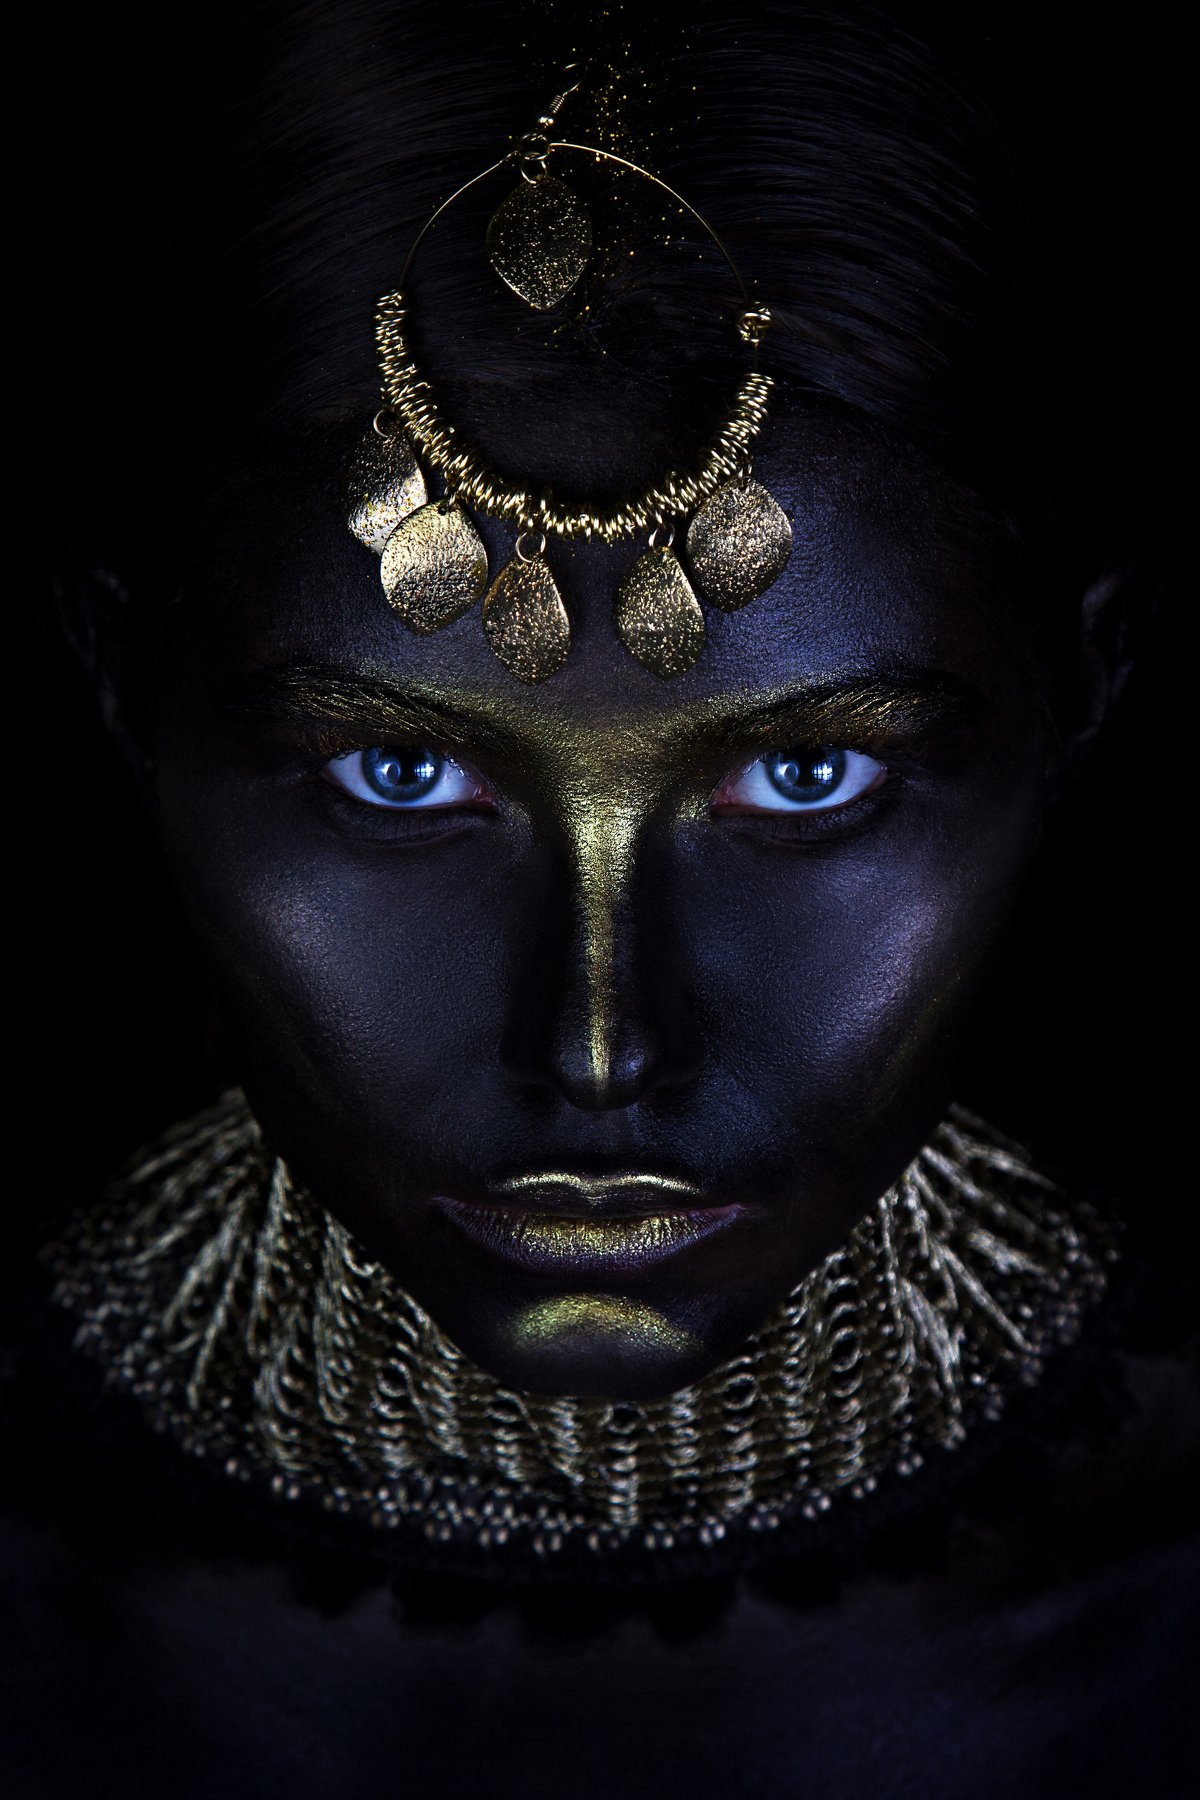 people, girl, portrait, makeup, art makeup, body painting, art, eyes, low key, black, color, leather, texture, eyebrows, jewelry, gold, lips, neck, collar, Mayan, tribe, life, look, creative, vision, Ковалёв Иван